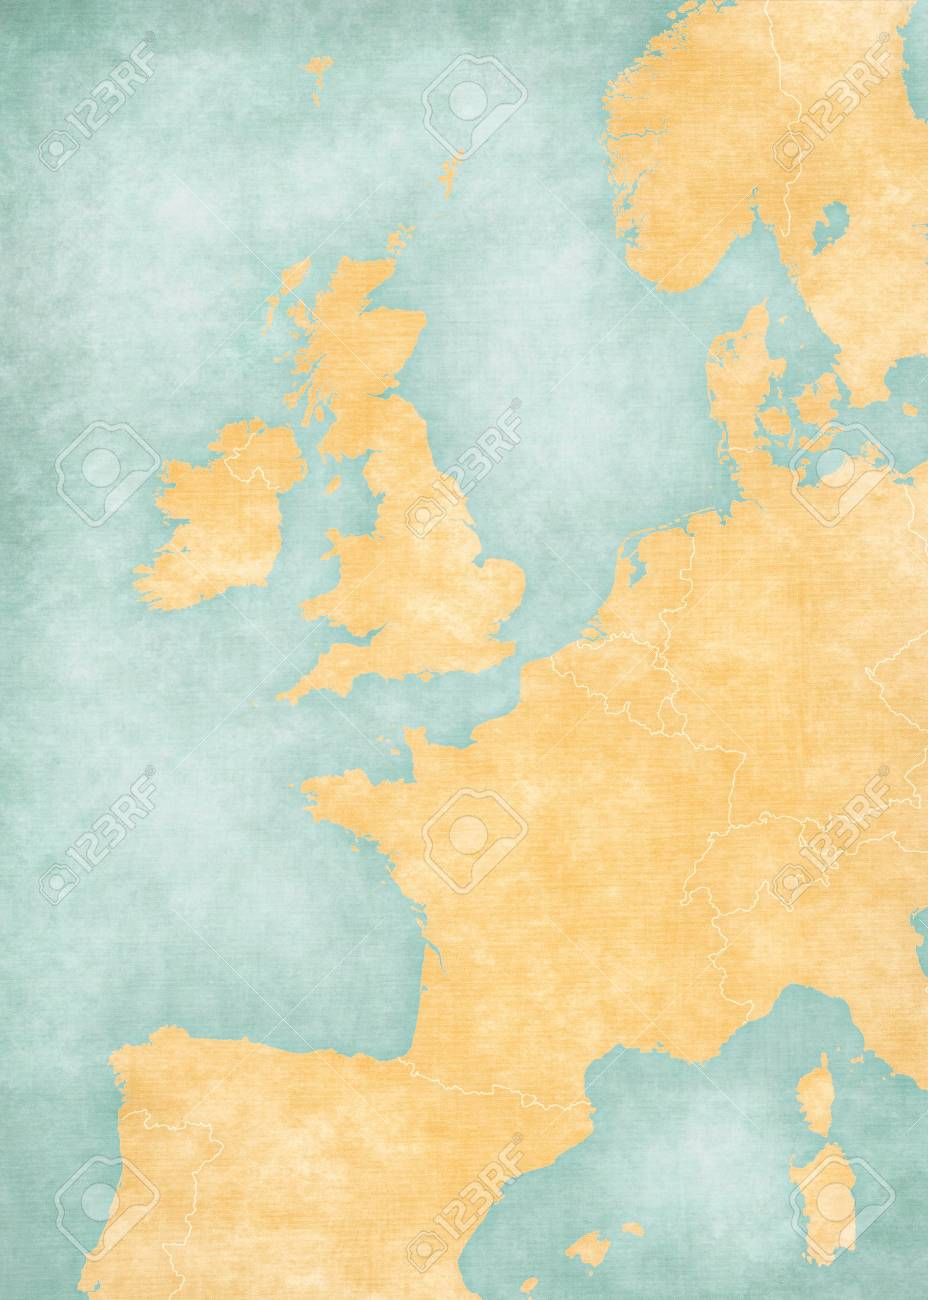 Image of: Blank Map Of Western Europe With Country Borders In Soft Grunge Stock Photo Picture And Royalty Free Image Image 110192049